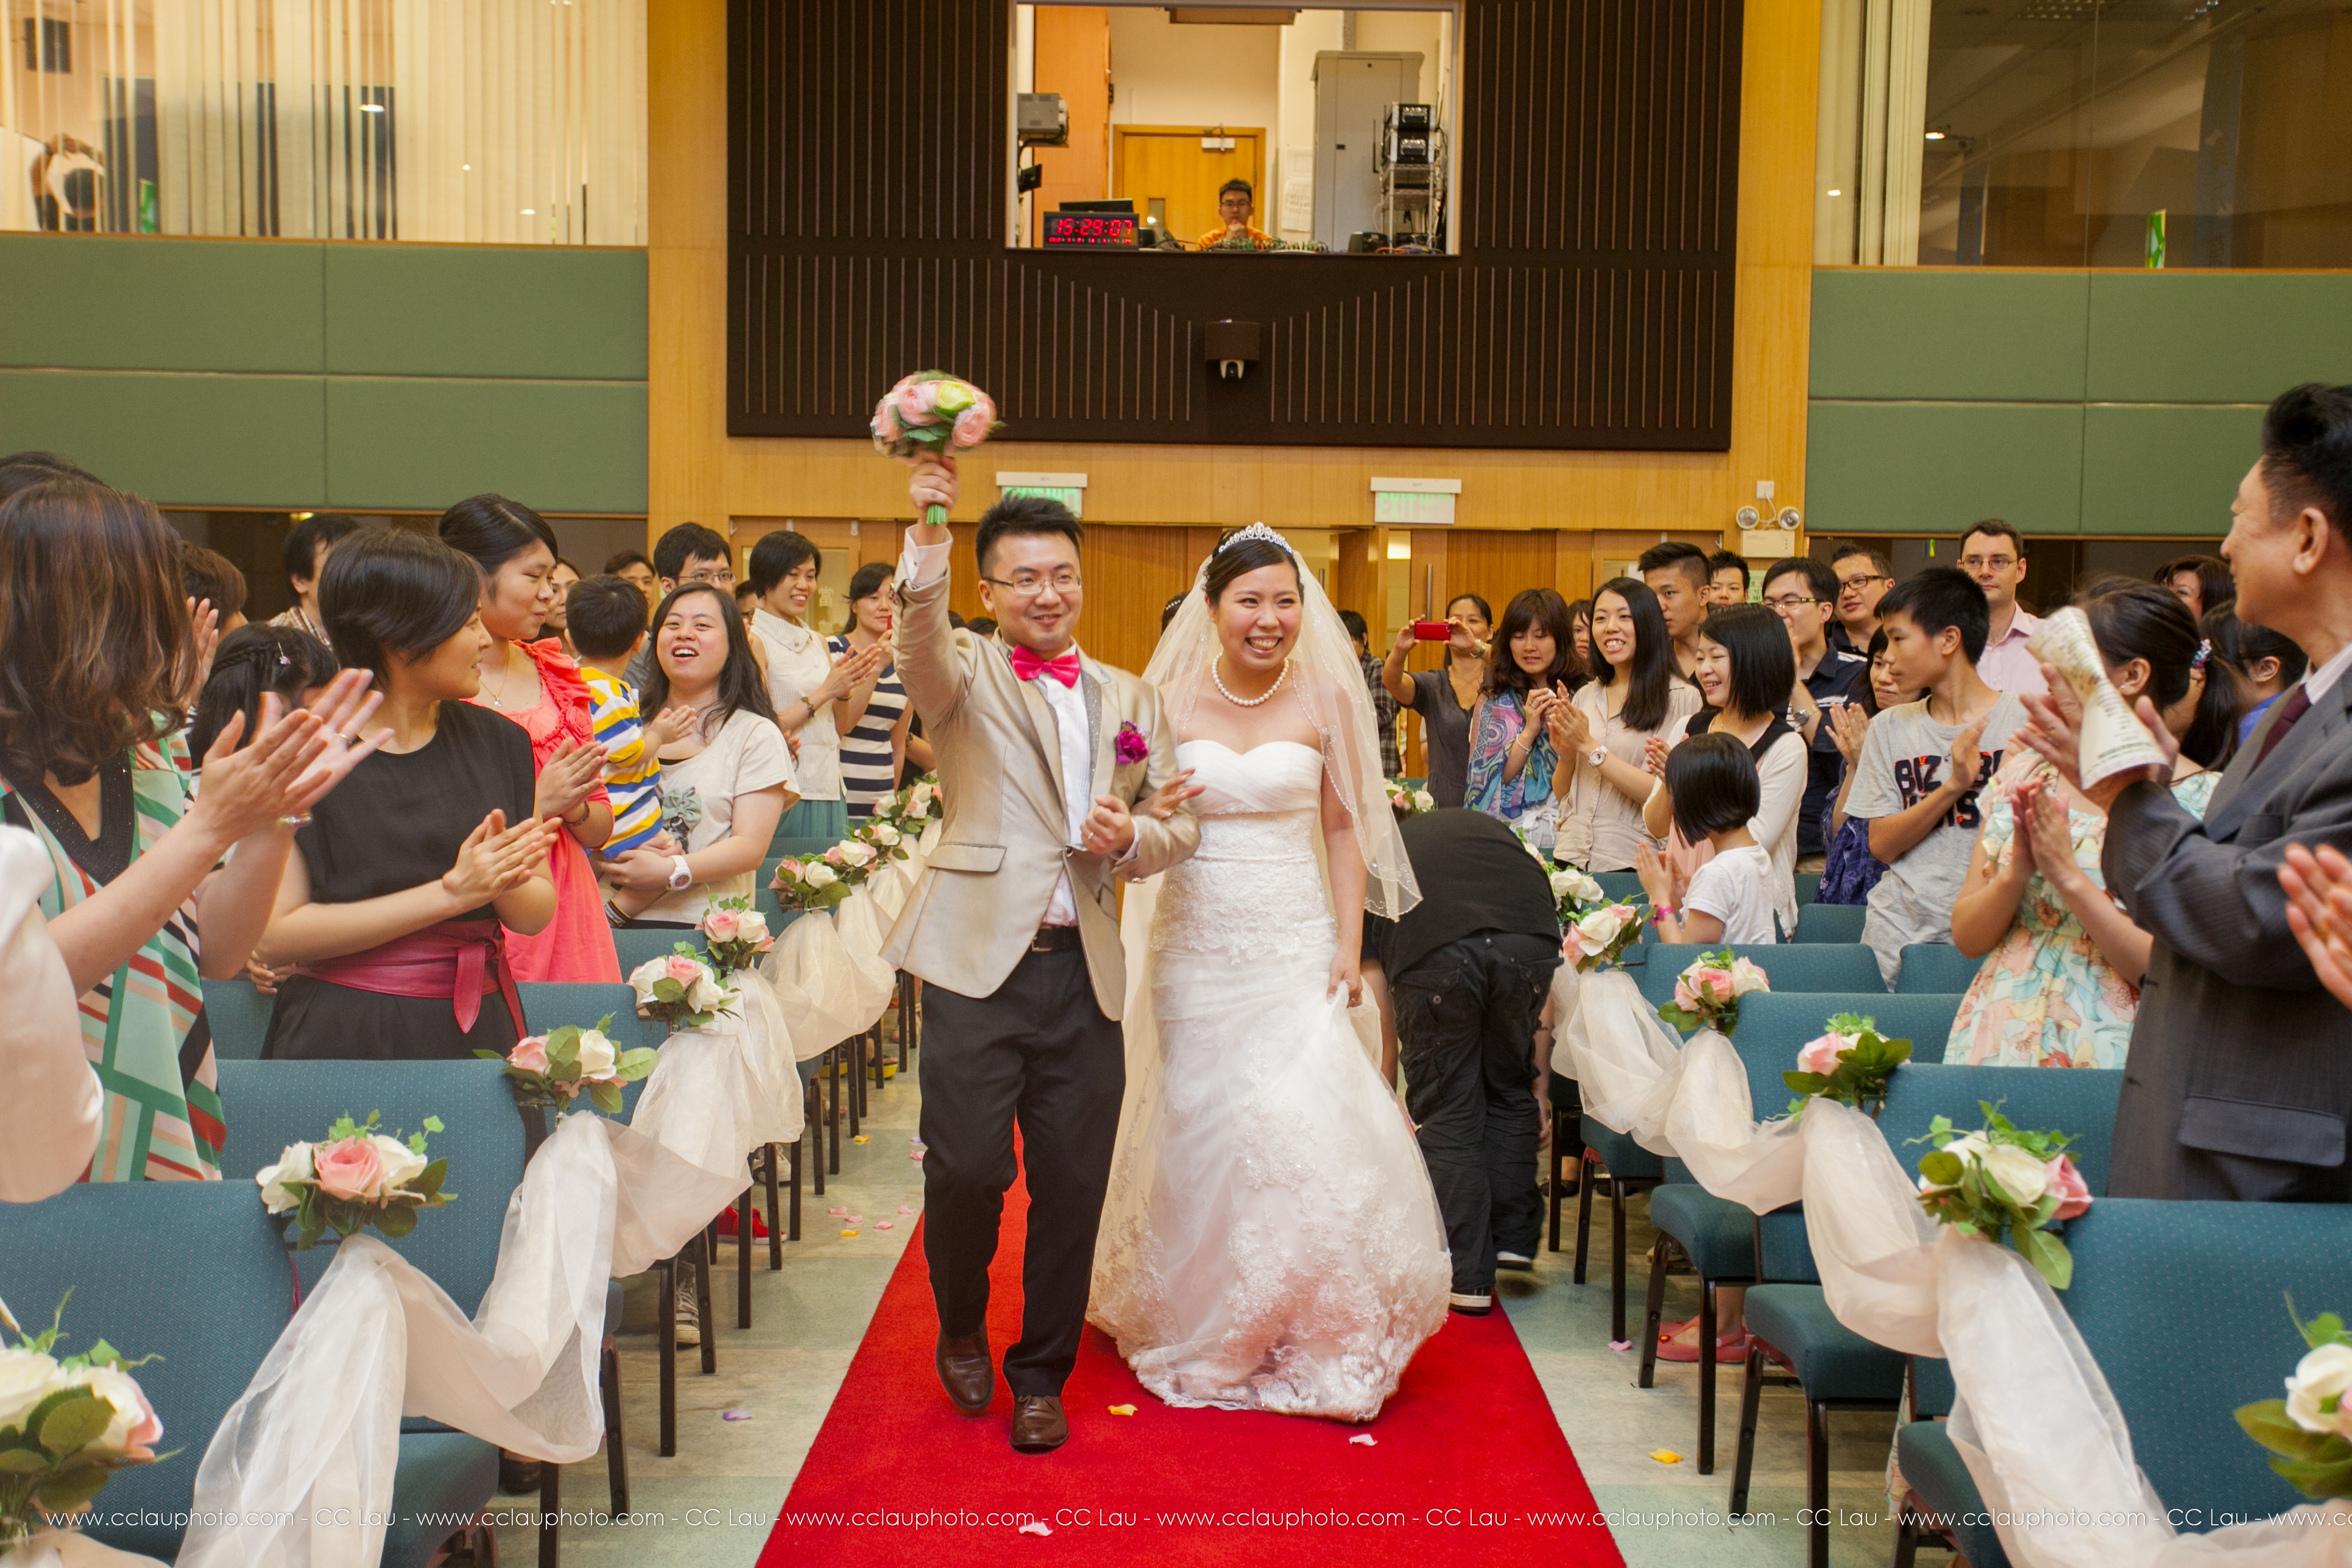 CCLAU Wedding Photography x Videography Group | 信望愛@CC LAU Photography x Videography Group